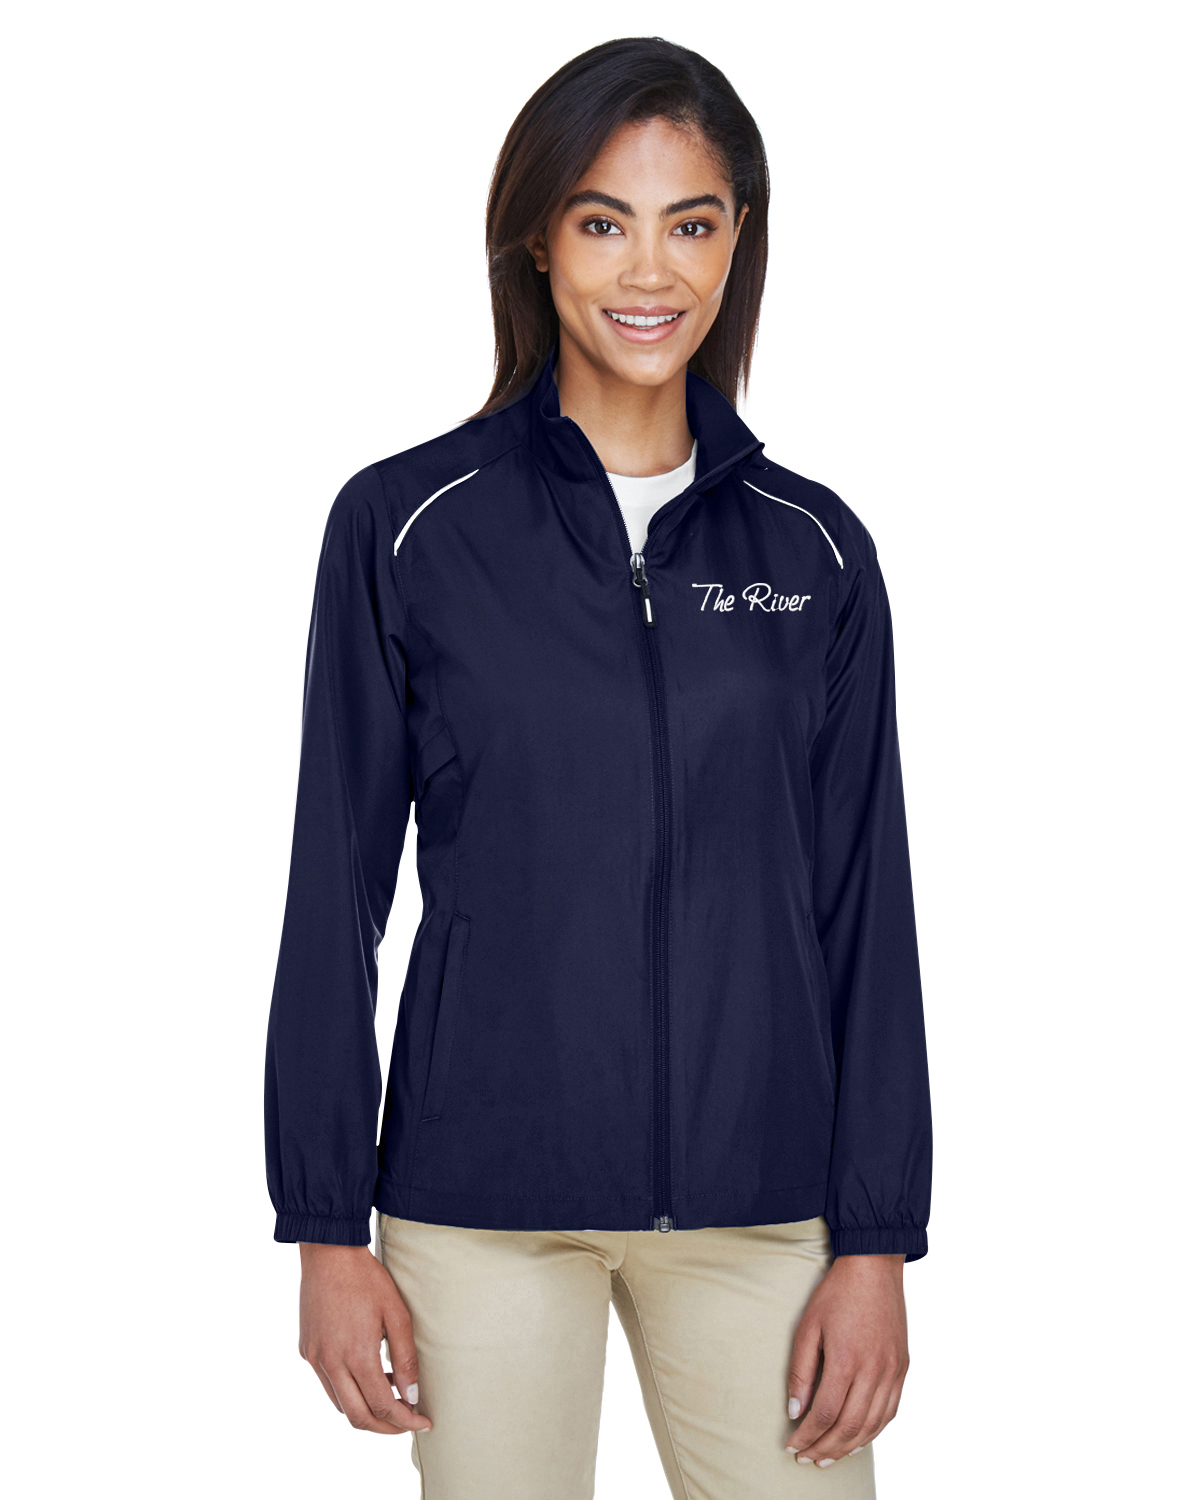 78183Prime Plus Core 365 Ladies' Motivate Unlined Lightweight Jacket Classic Navy